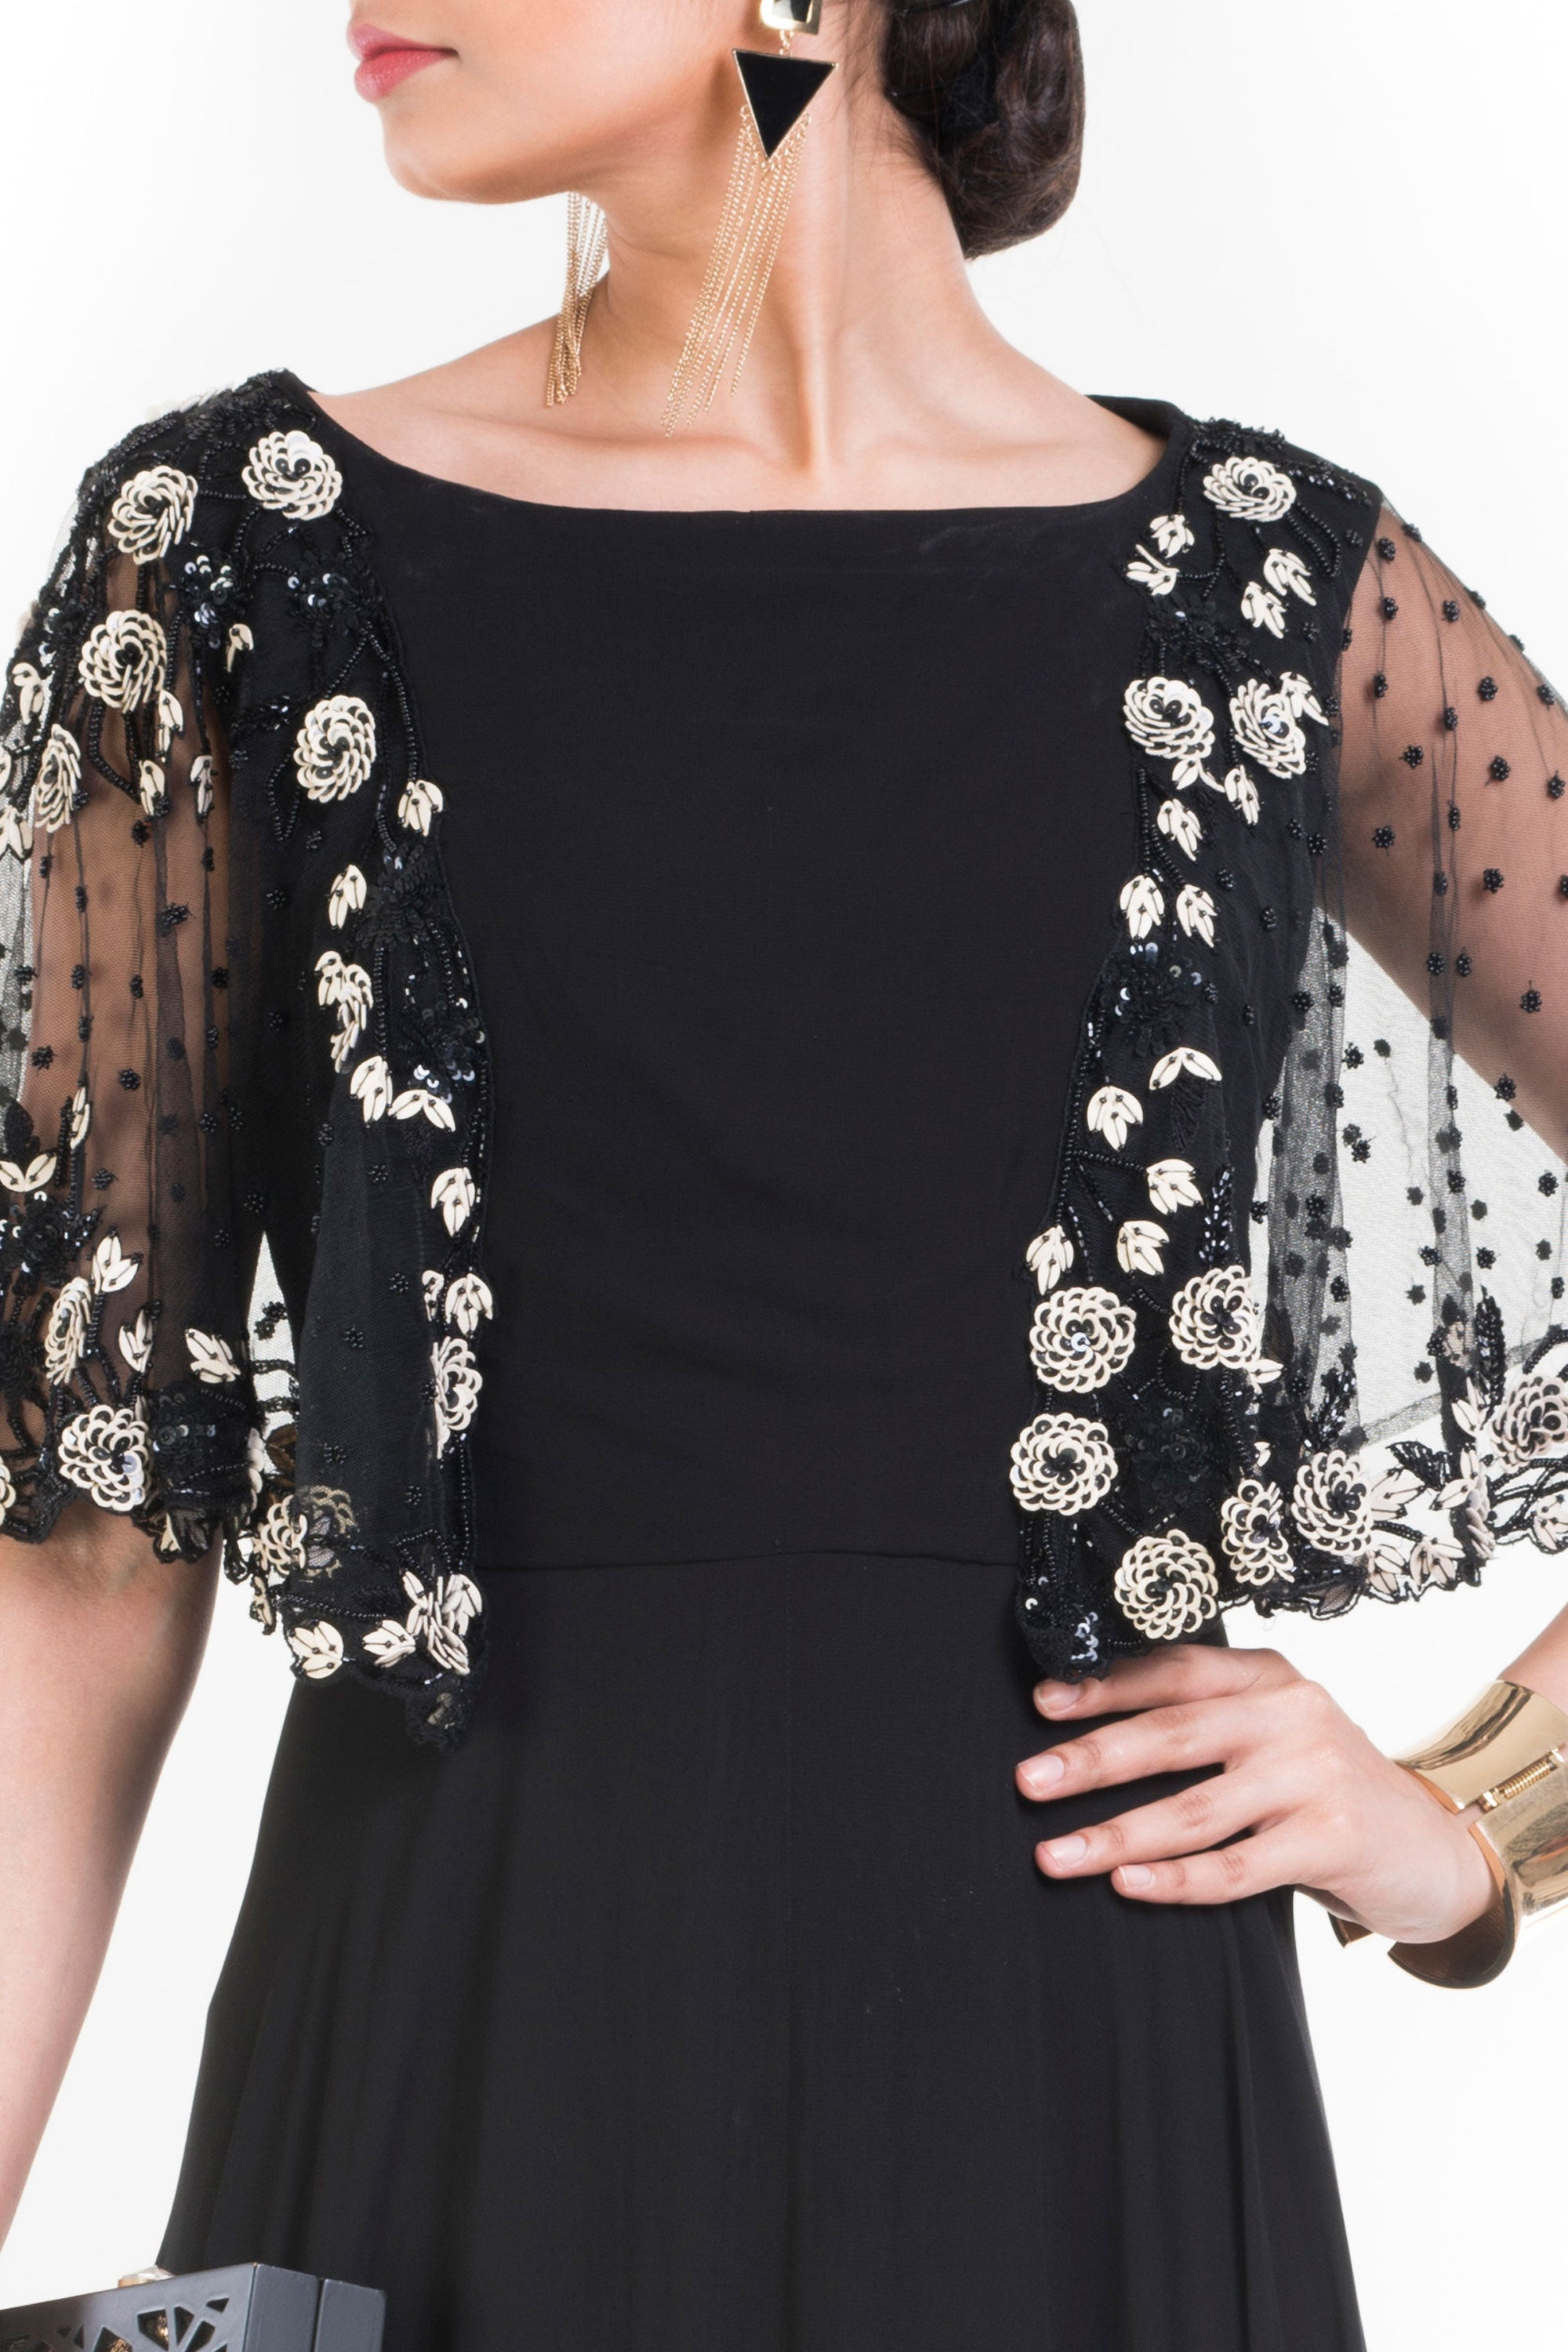 Jet Black Long Dress With Embroidered Half Cape Closeup